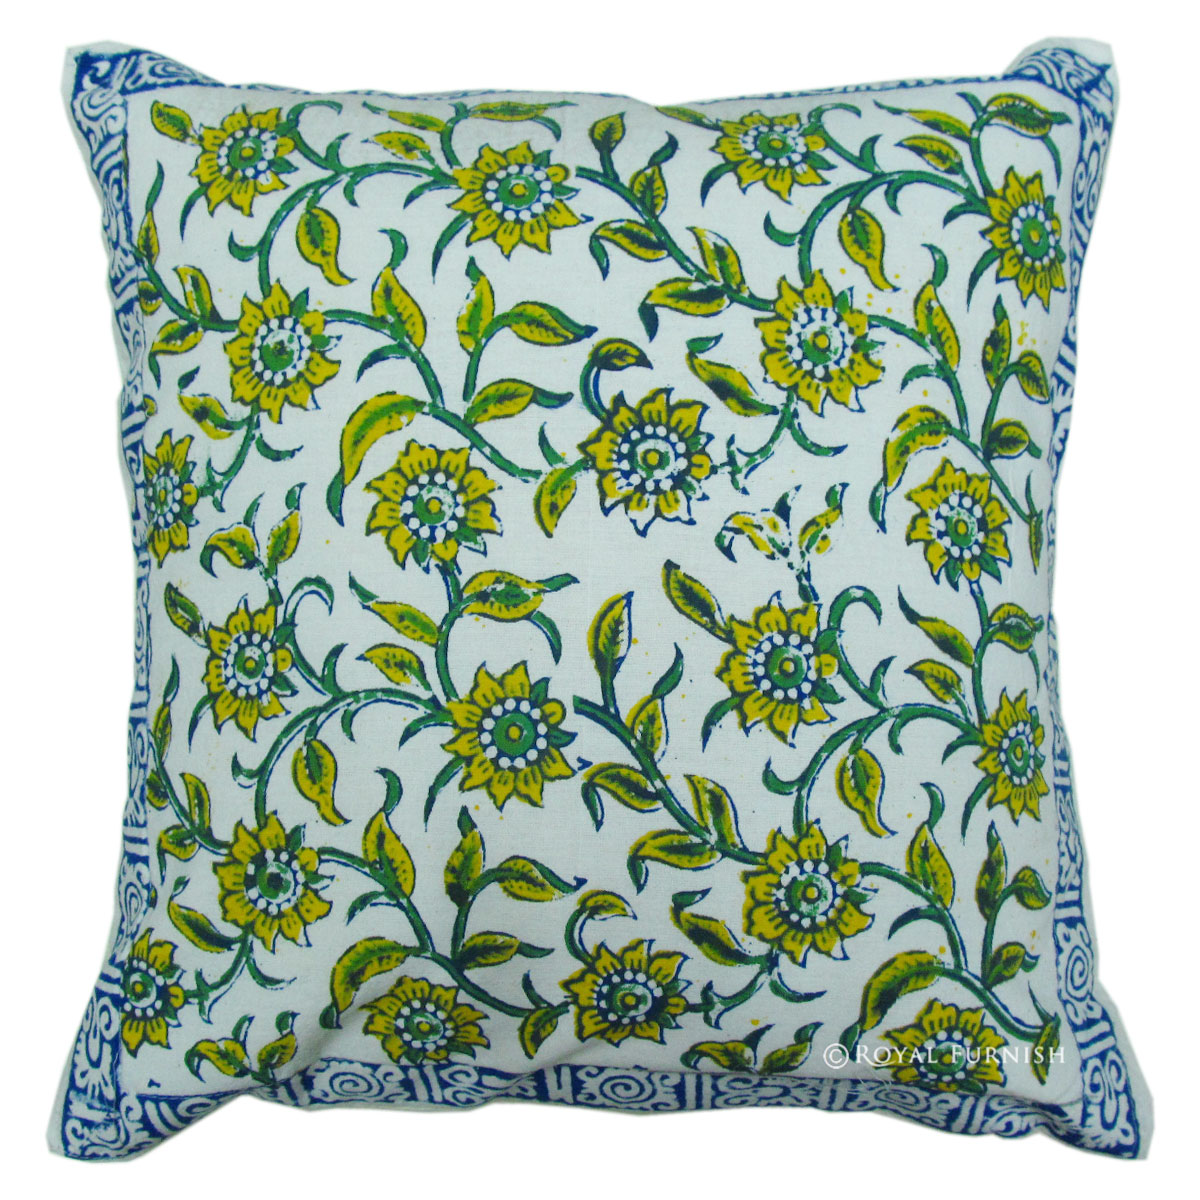 16x16 Quot Inch Indian Block Printed Cotton Cushion Cover